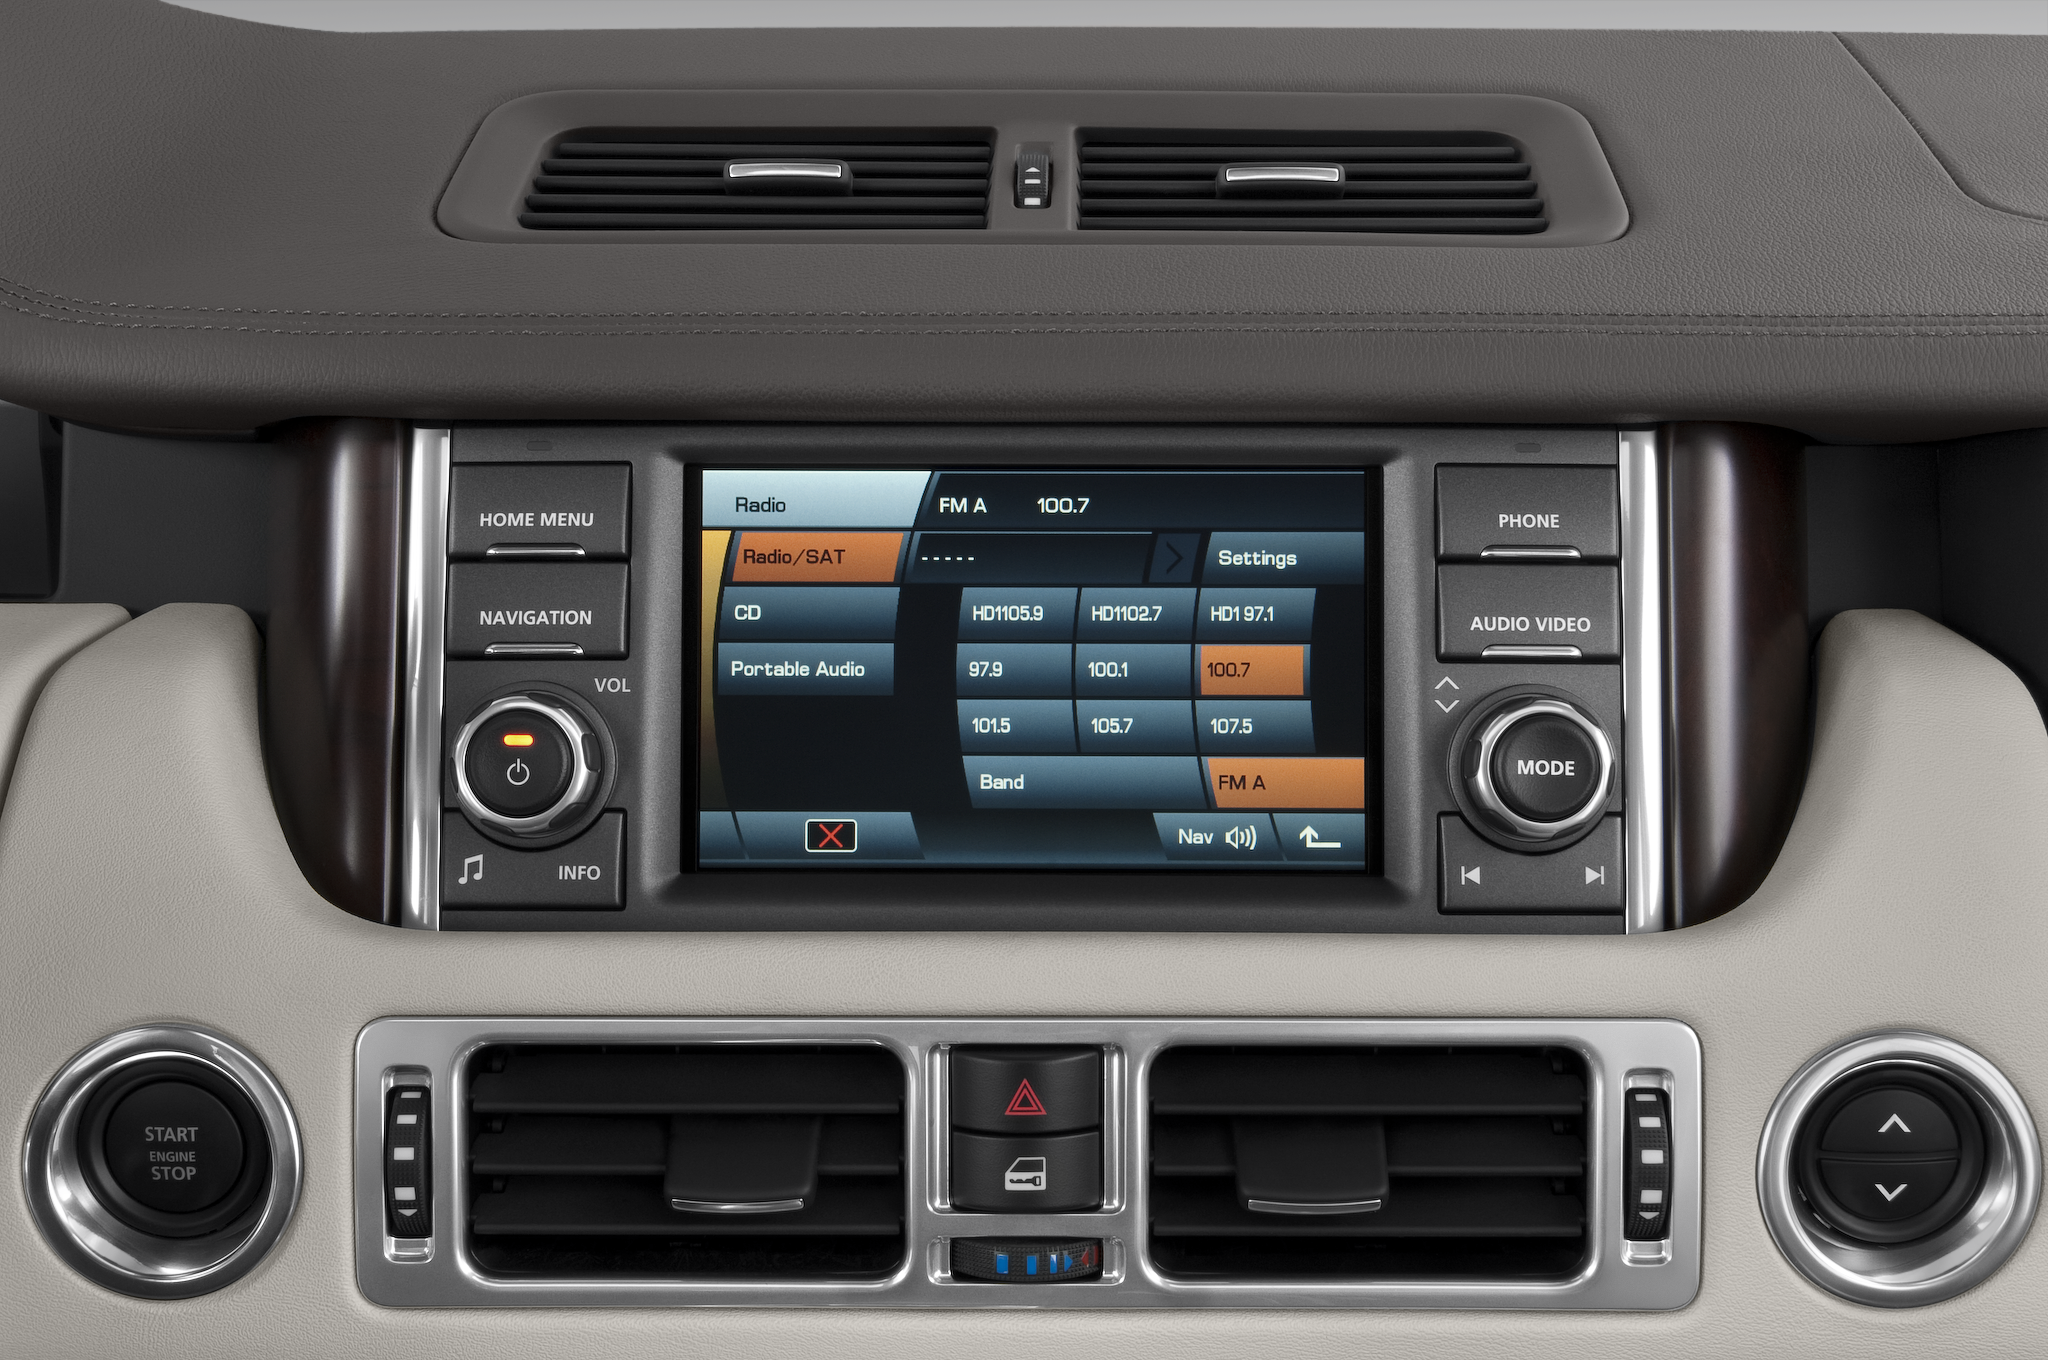 https://st.automobilemag.com/uploads/sites/10/2015/11/2011-land-rover-range-rover-hse-4wd-suv-audio-system.png